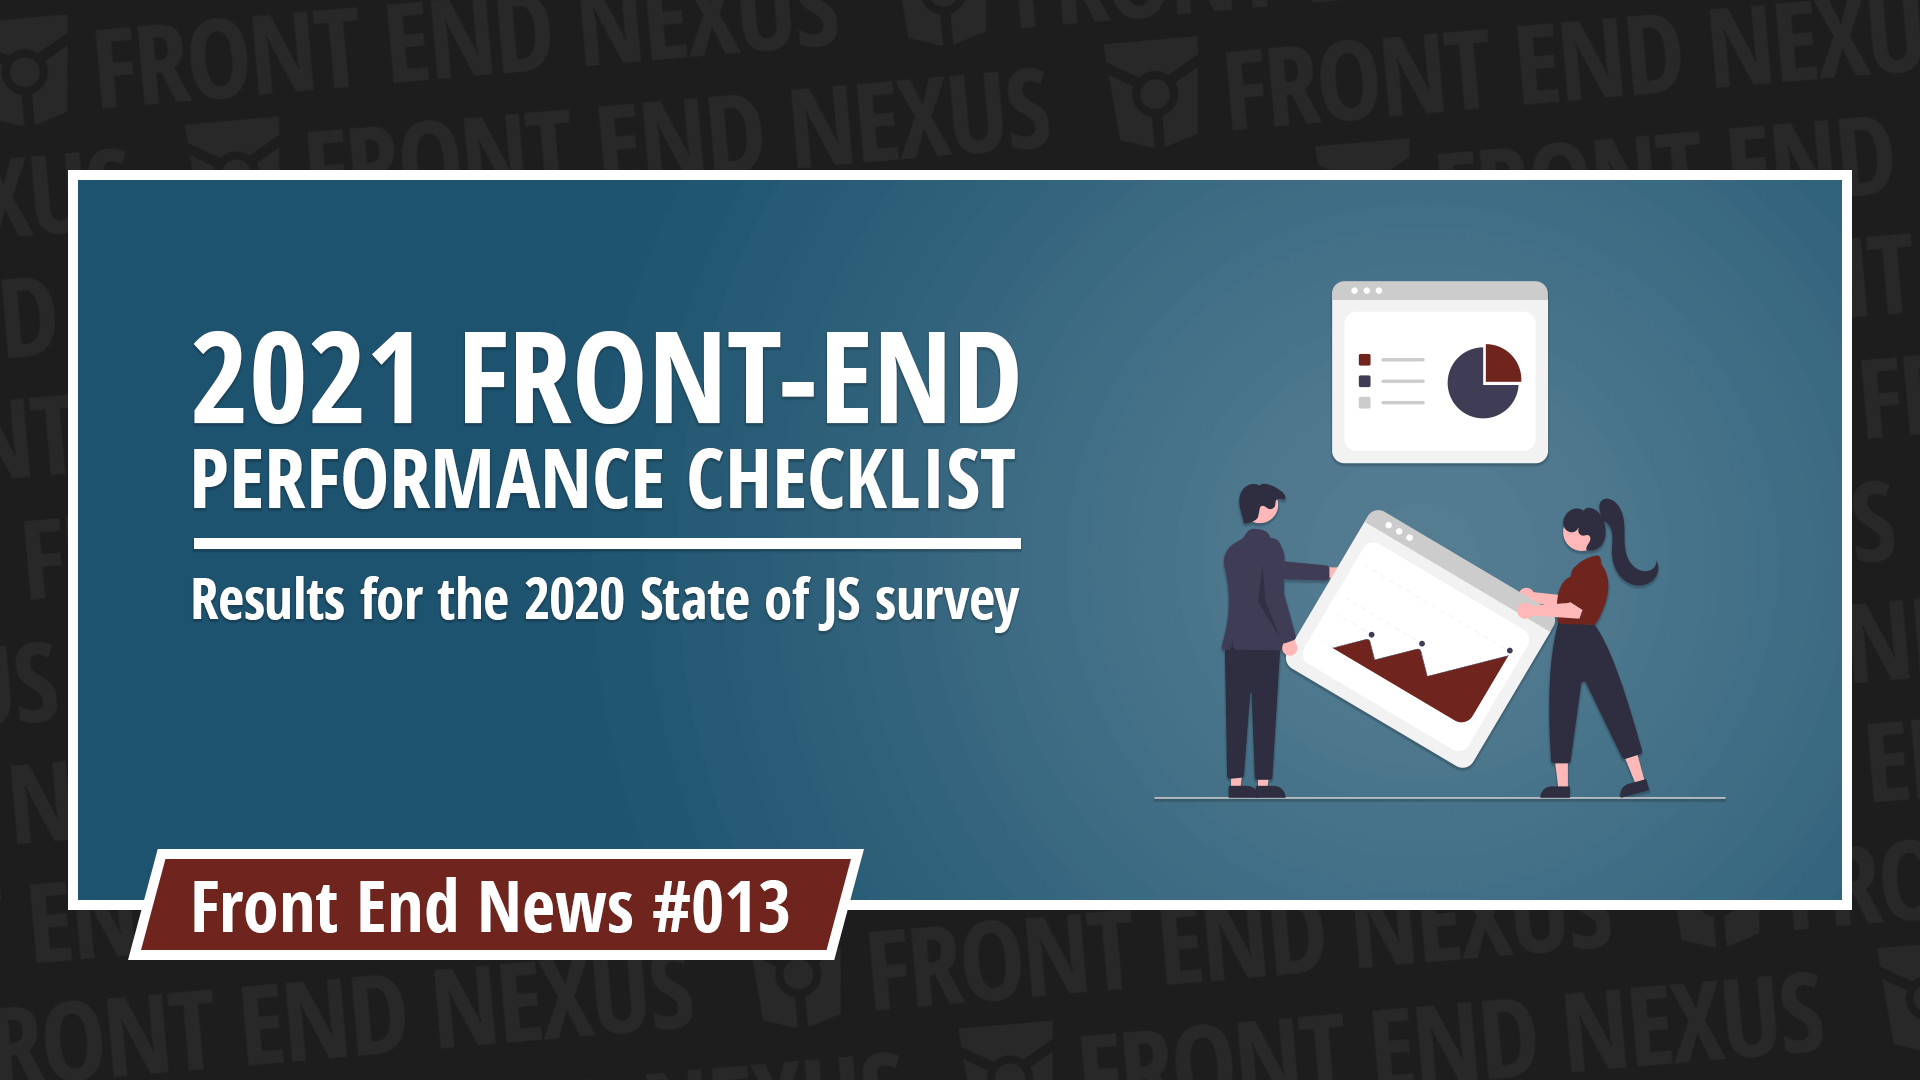 2021 Front End Performance Checklist and the 2020 State of JS results | Front End News #013